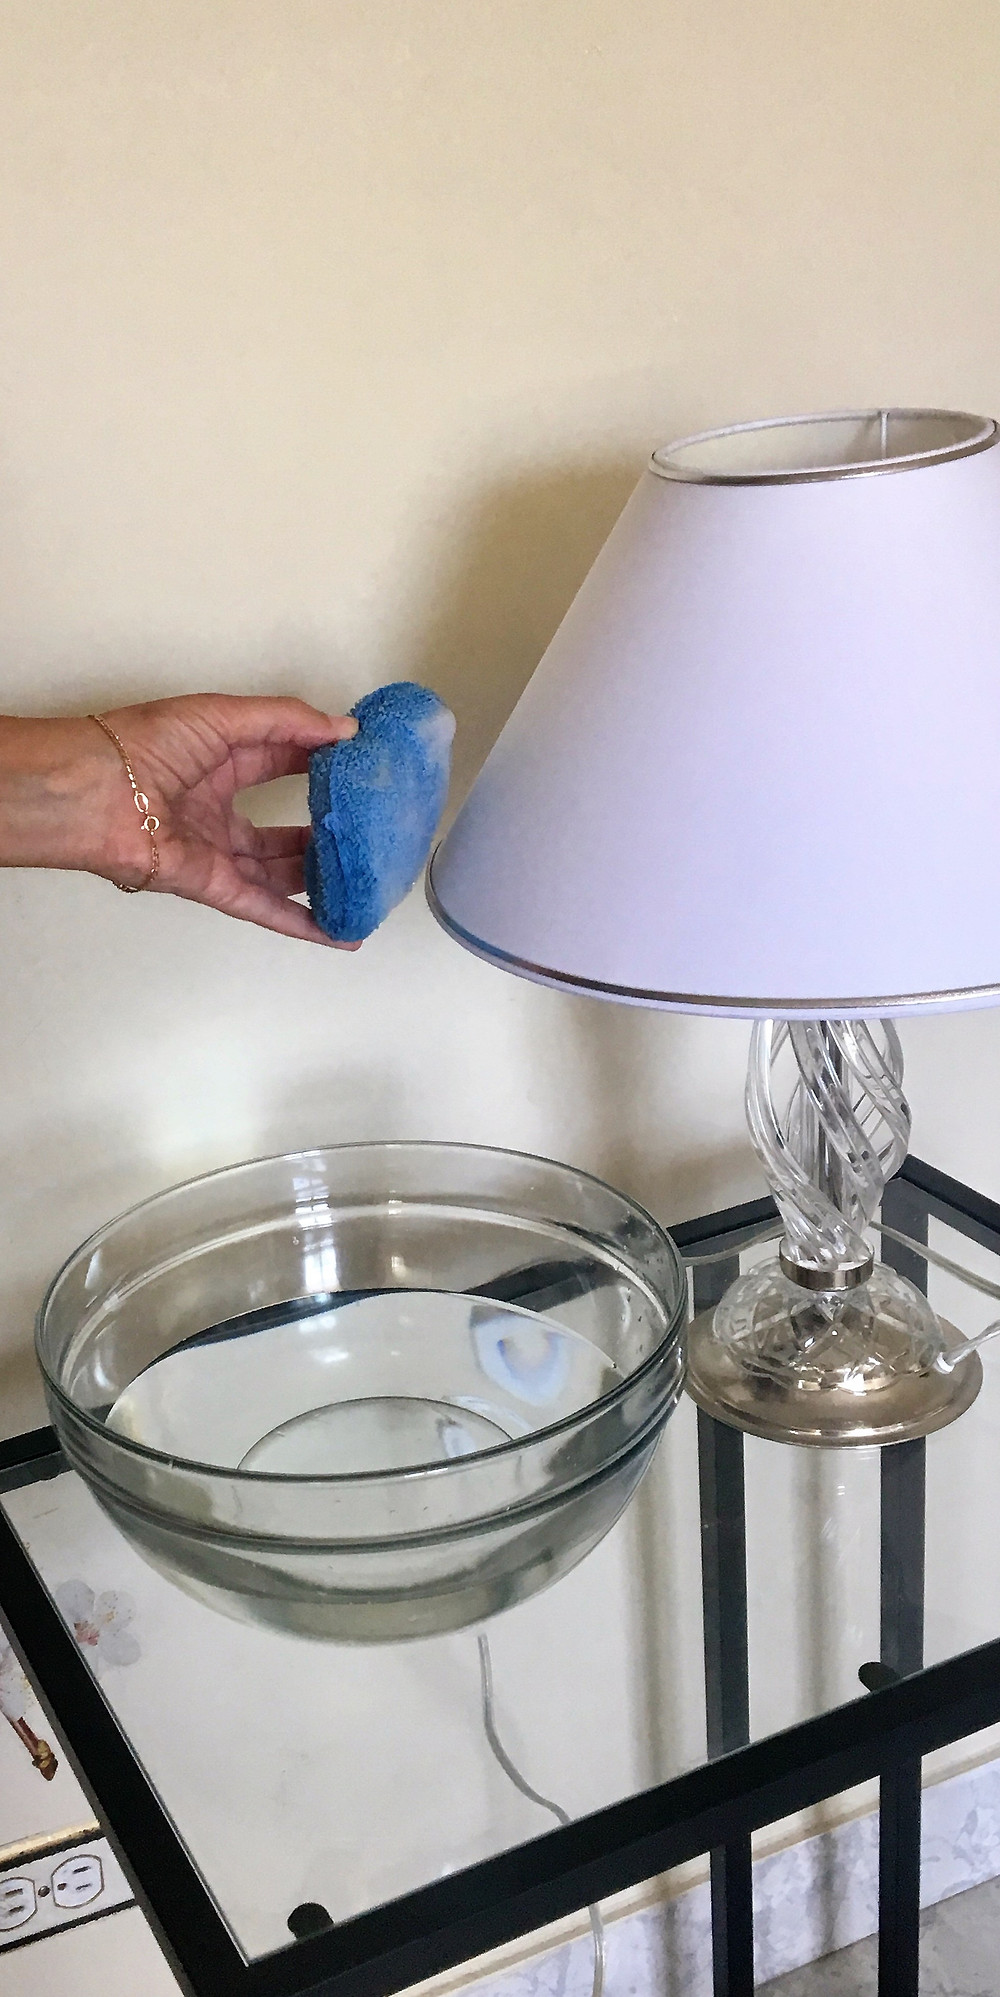 Soap the lampshade